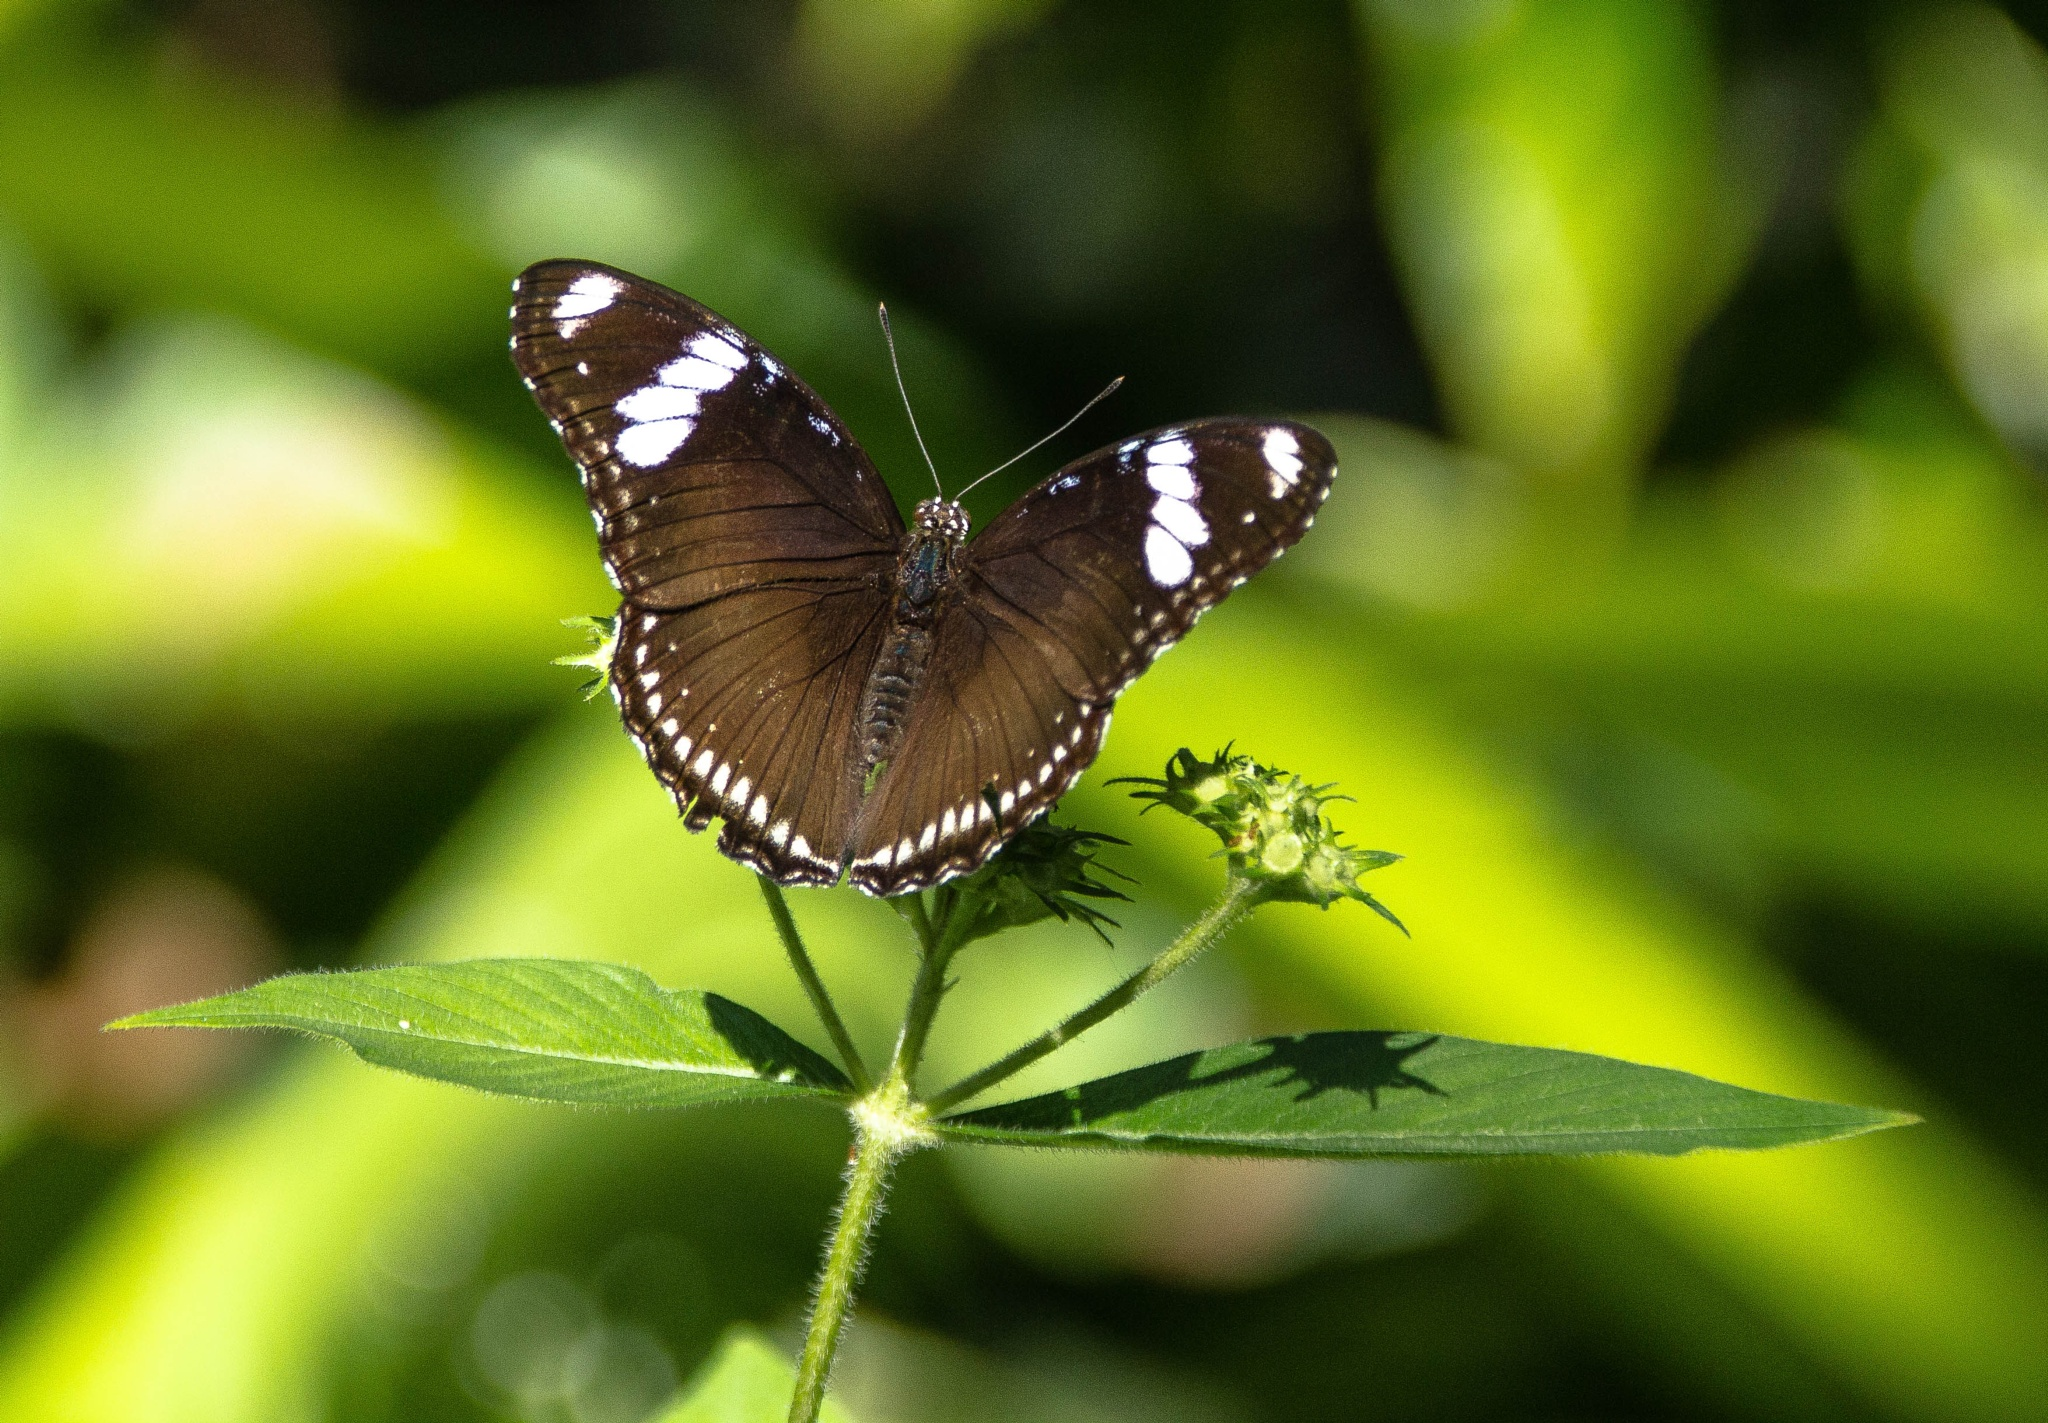 Brown & White Butterfly by Peter Cavaliere